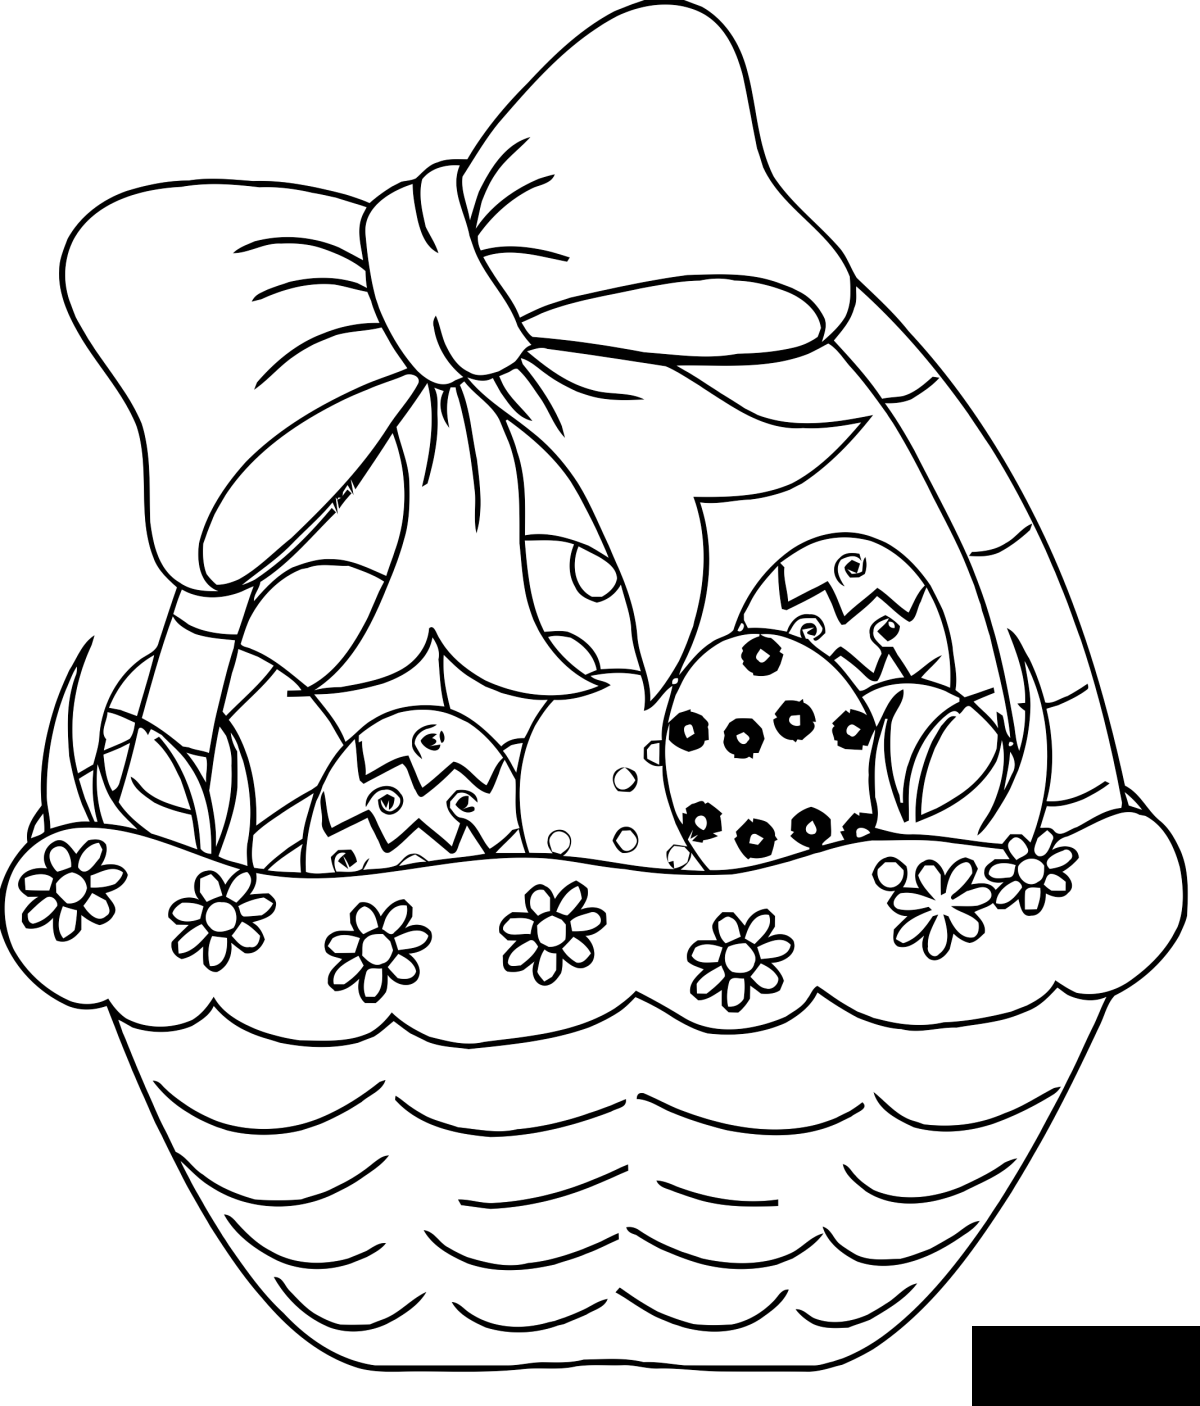 Simple Easter coloring page